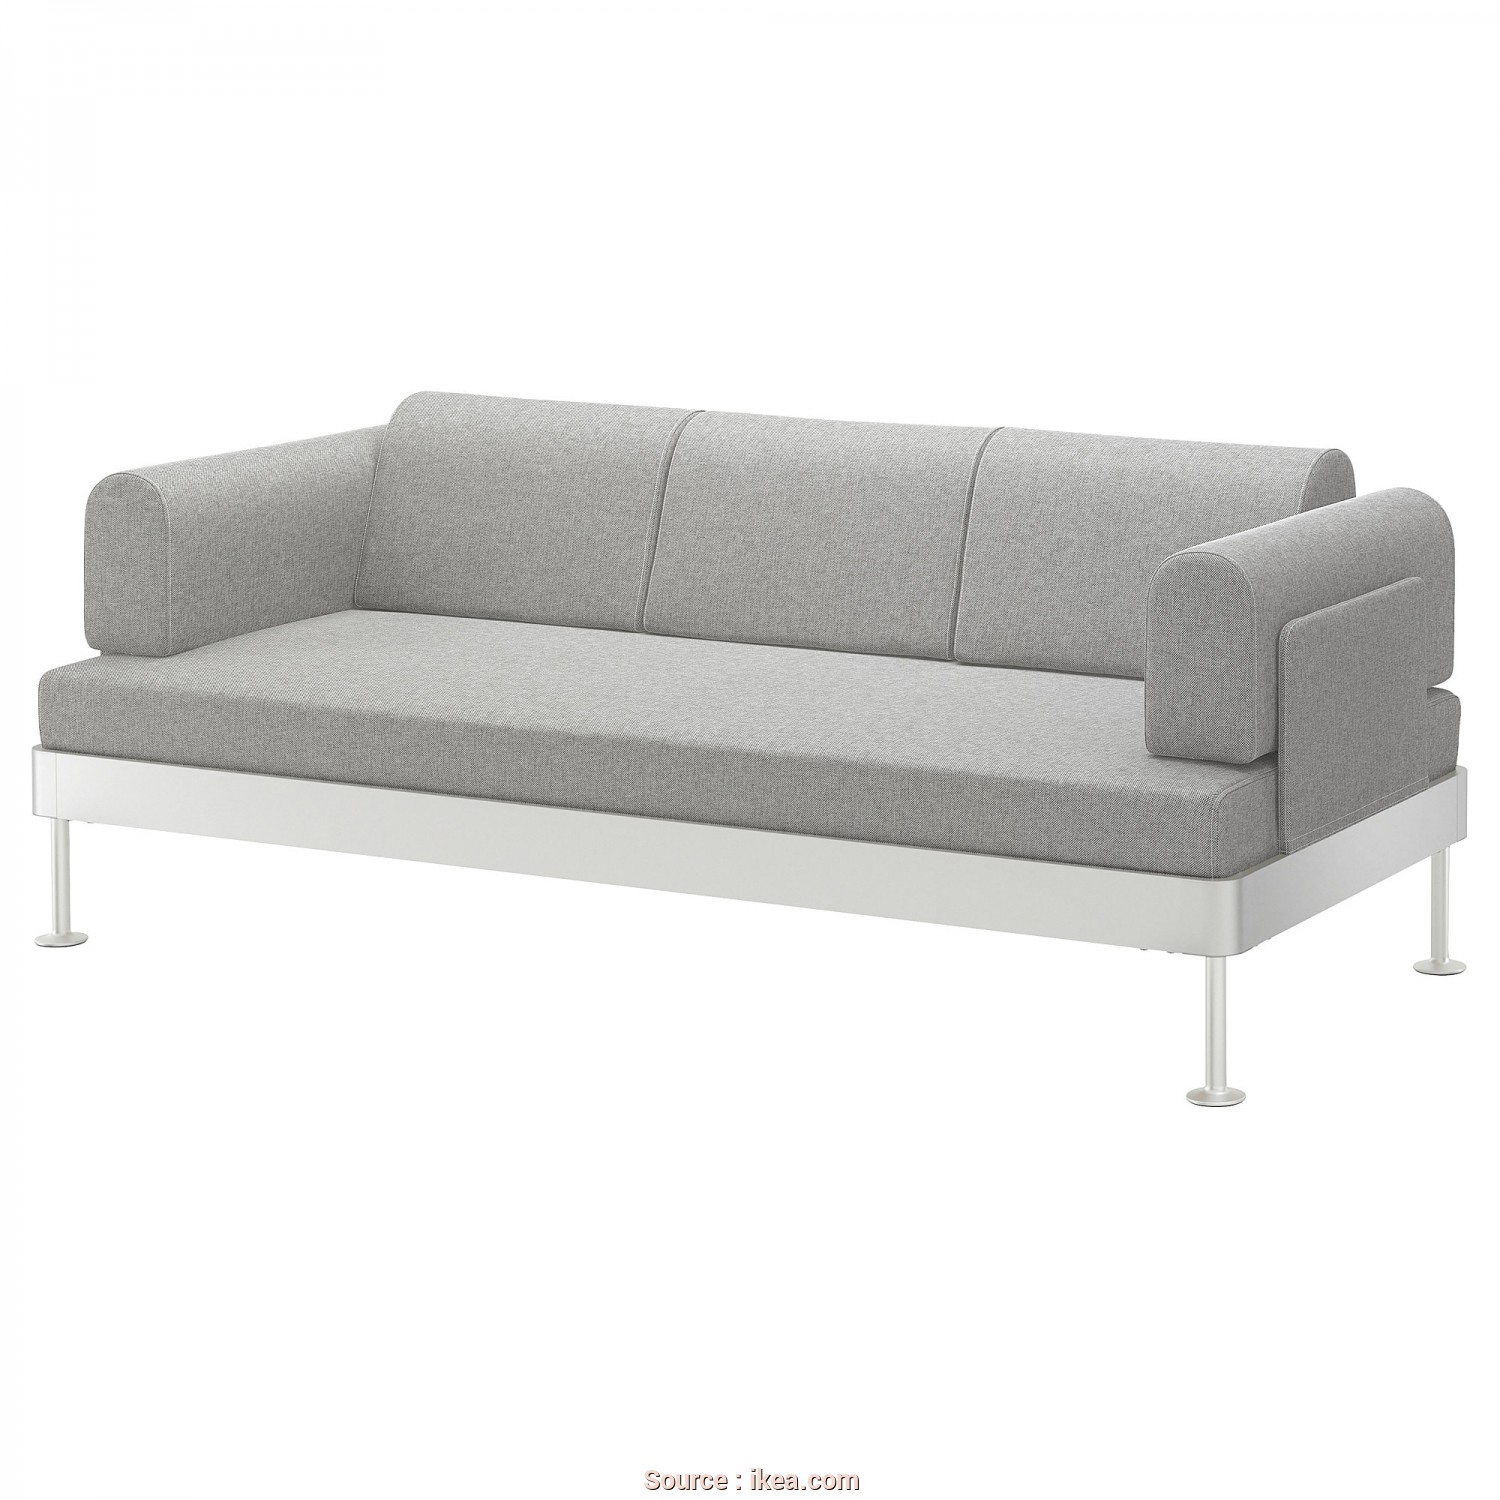 Ikea Klippan 3 Seter, Completare IKEA DELAKTIG 3-Seat Sofa, Cover Is Easy To Keep Clean As It Is